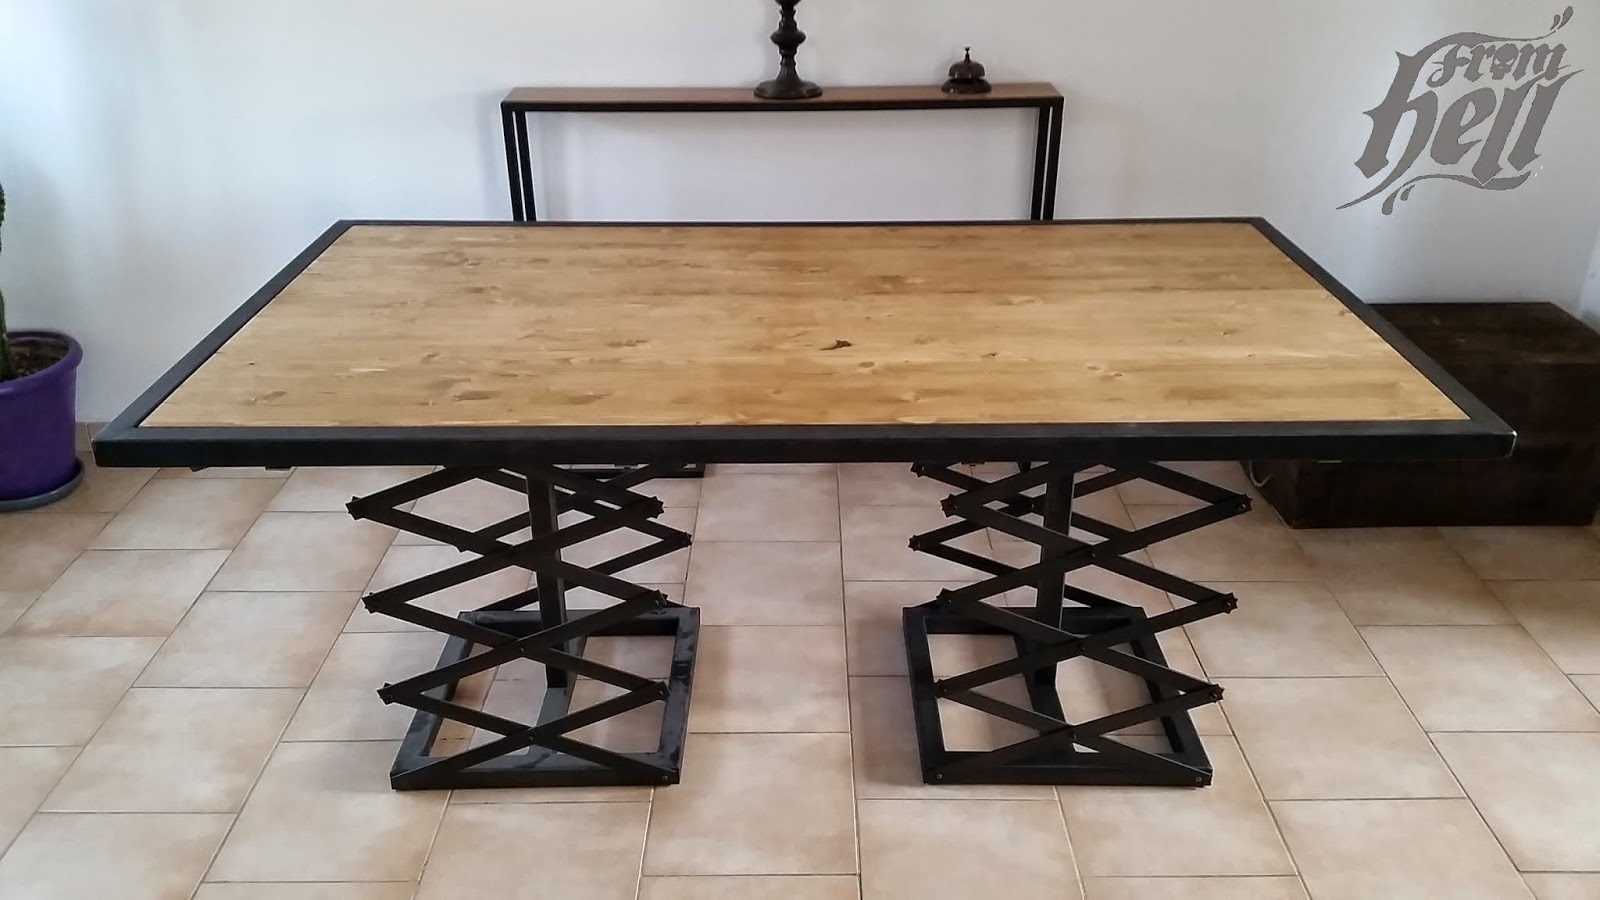 Table salle manger industrielle - Table a manger industrielle ...